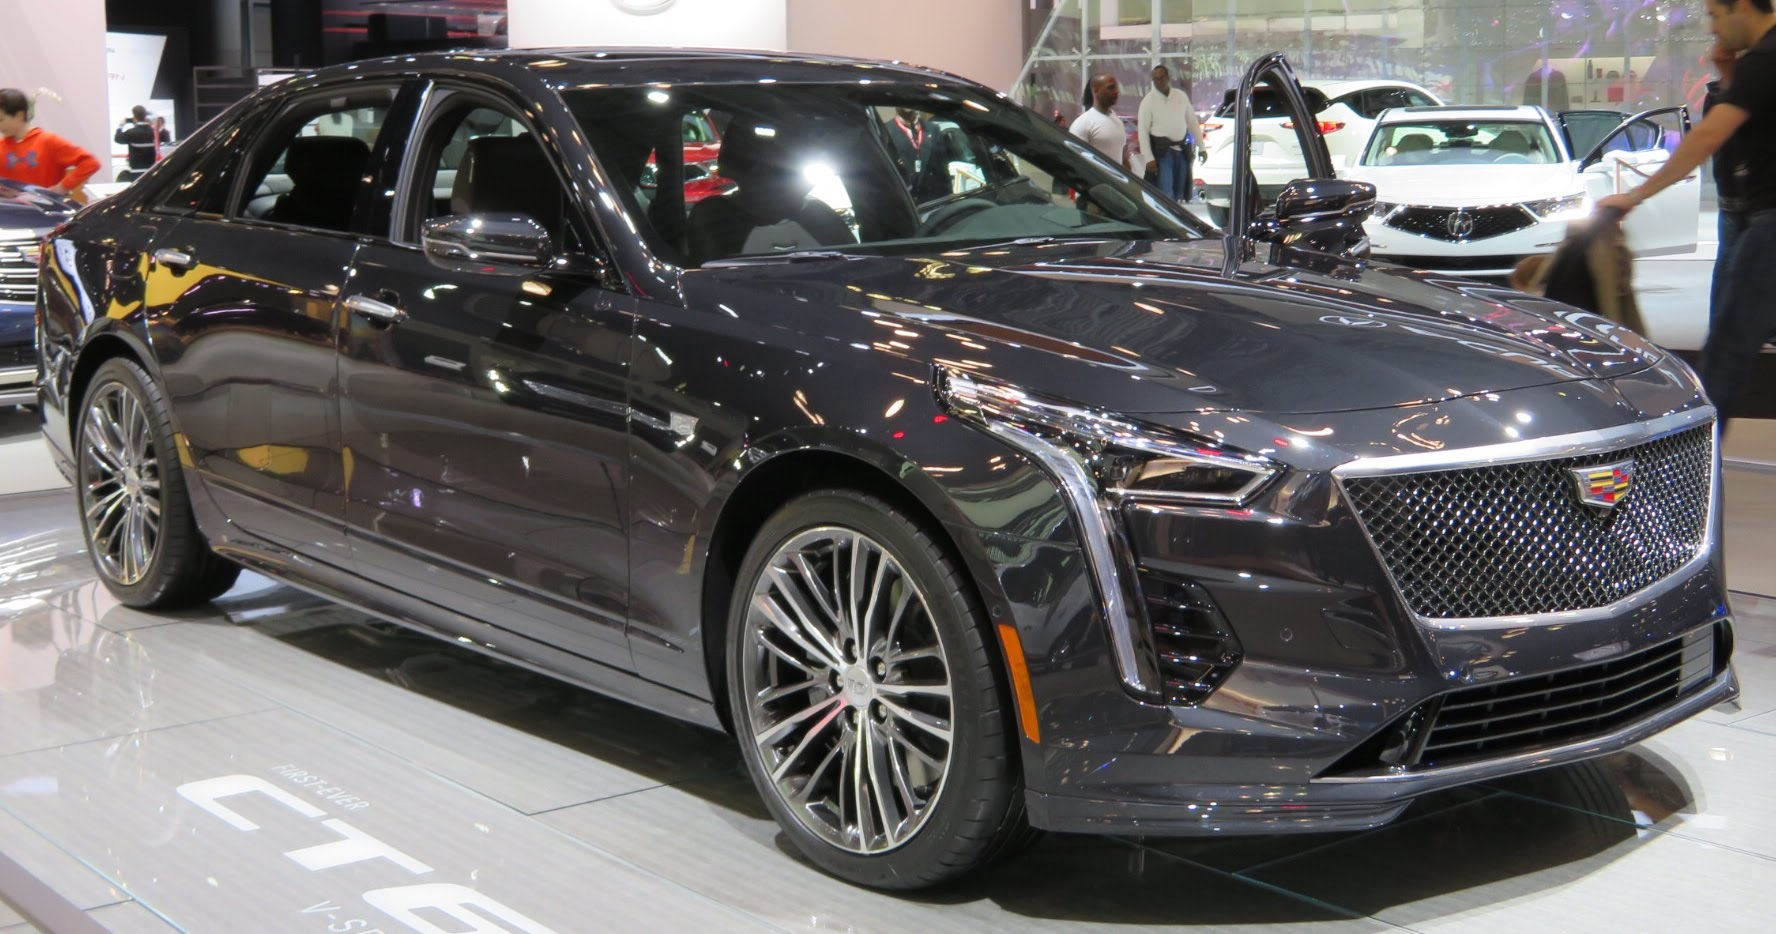 Cadillac Ct 4 >> File:2019 Cadillac CT6 V-Sport front 4.2.18.jpg - Wikimedia Commons